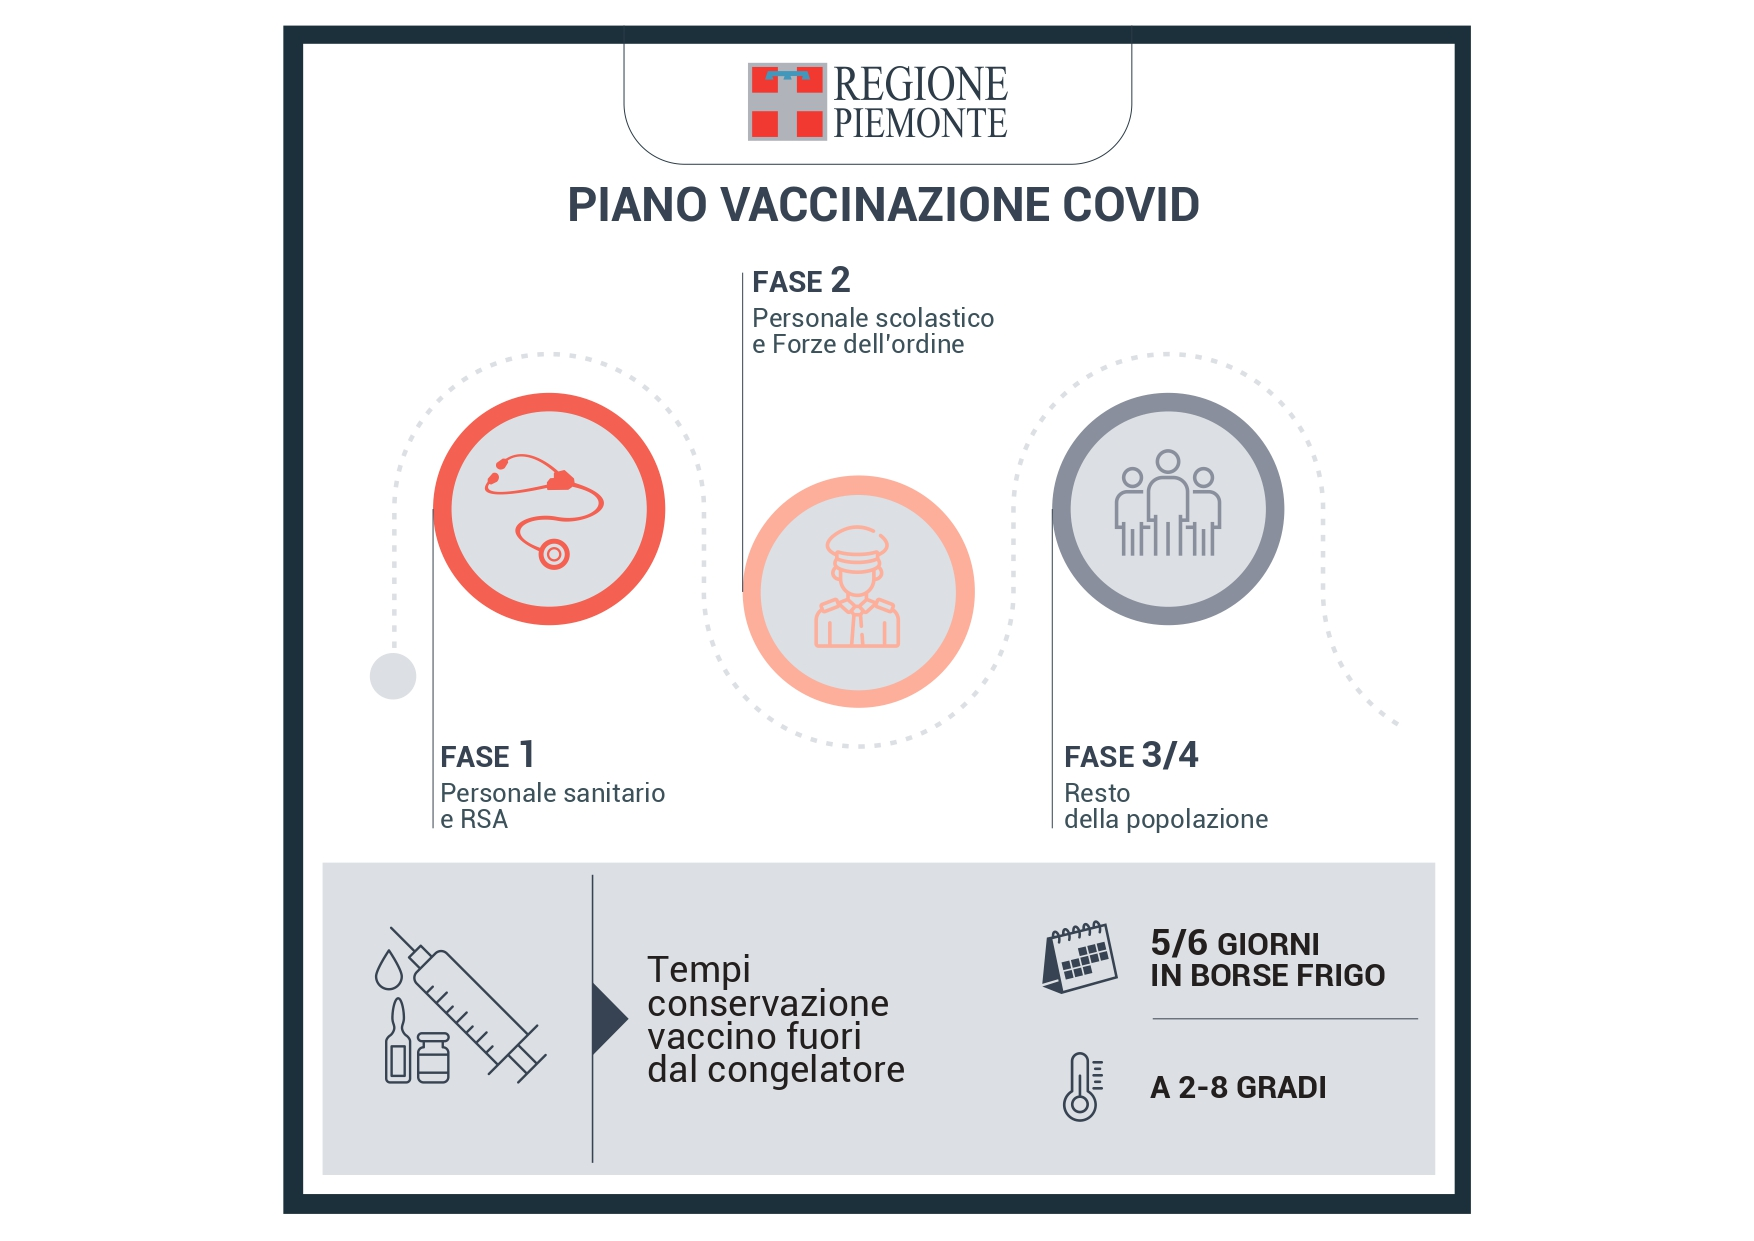 covidpiemonte_pianopandemico (1)_pages-to-jpg-0009